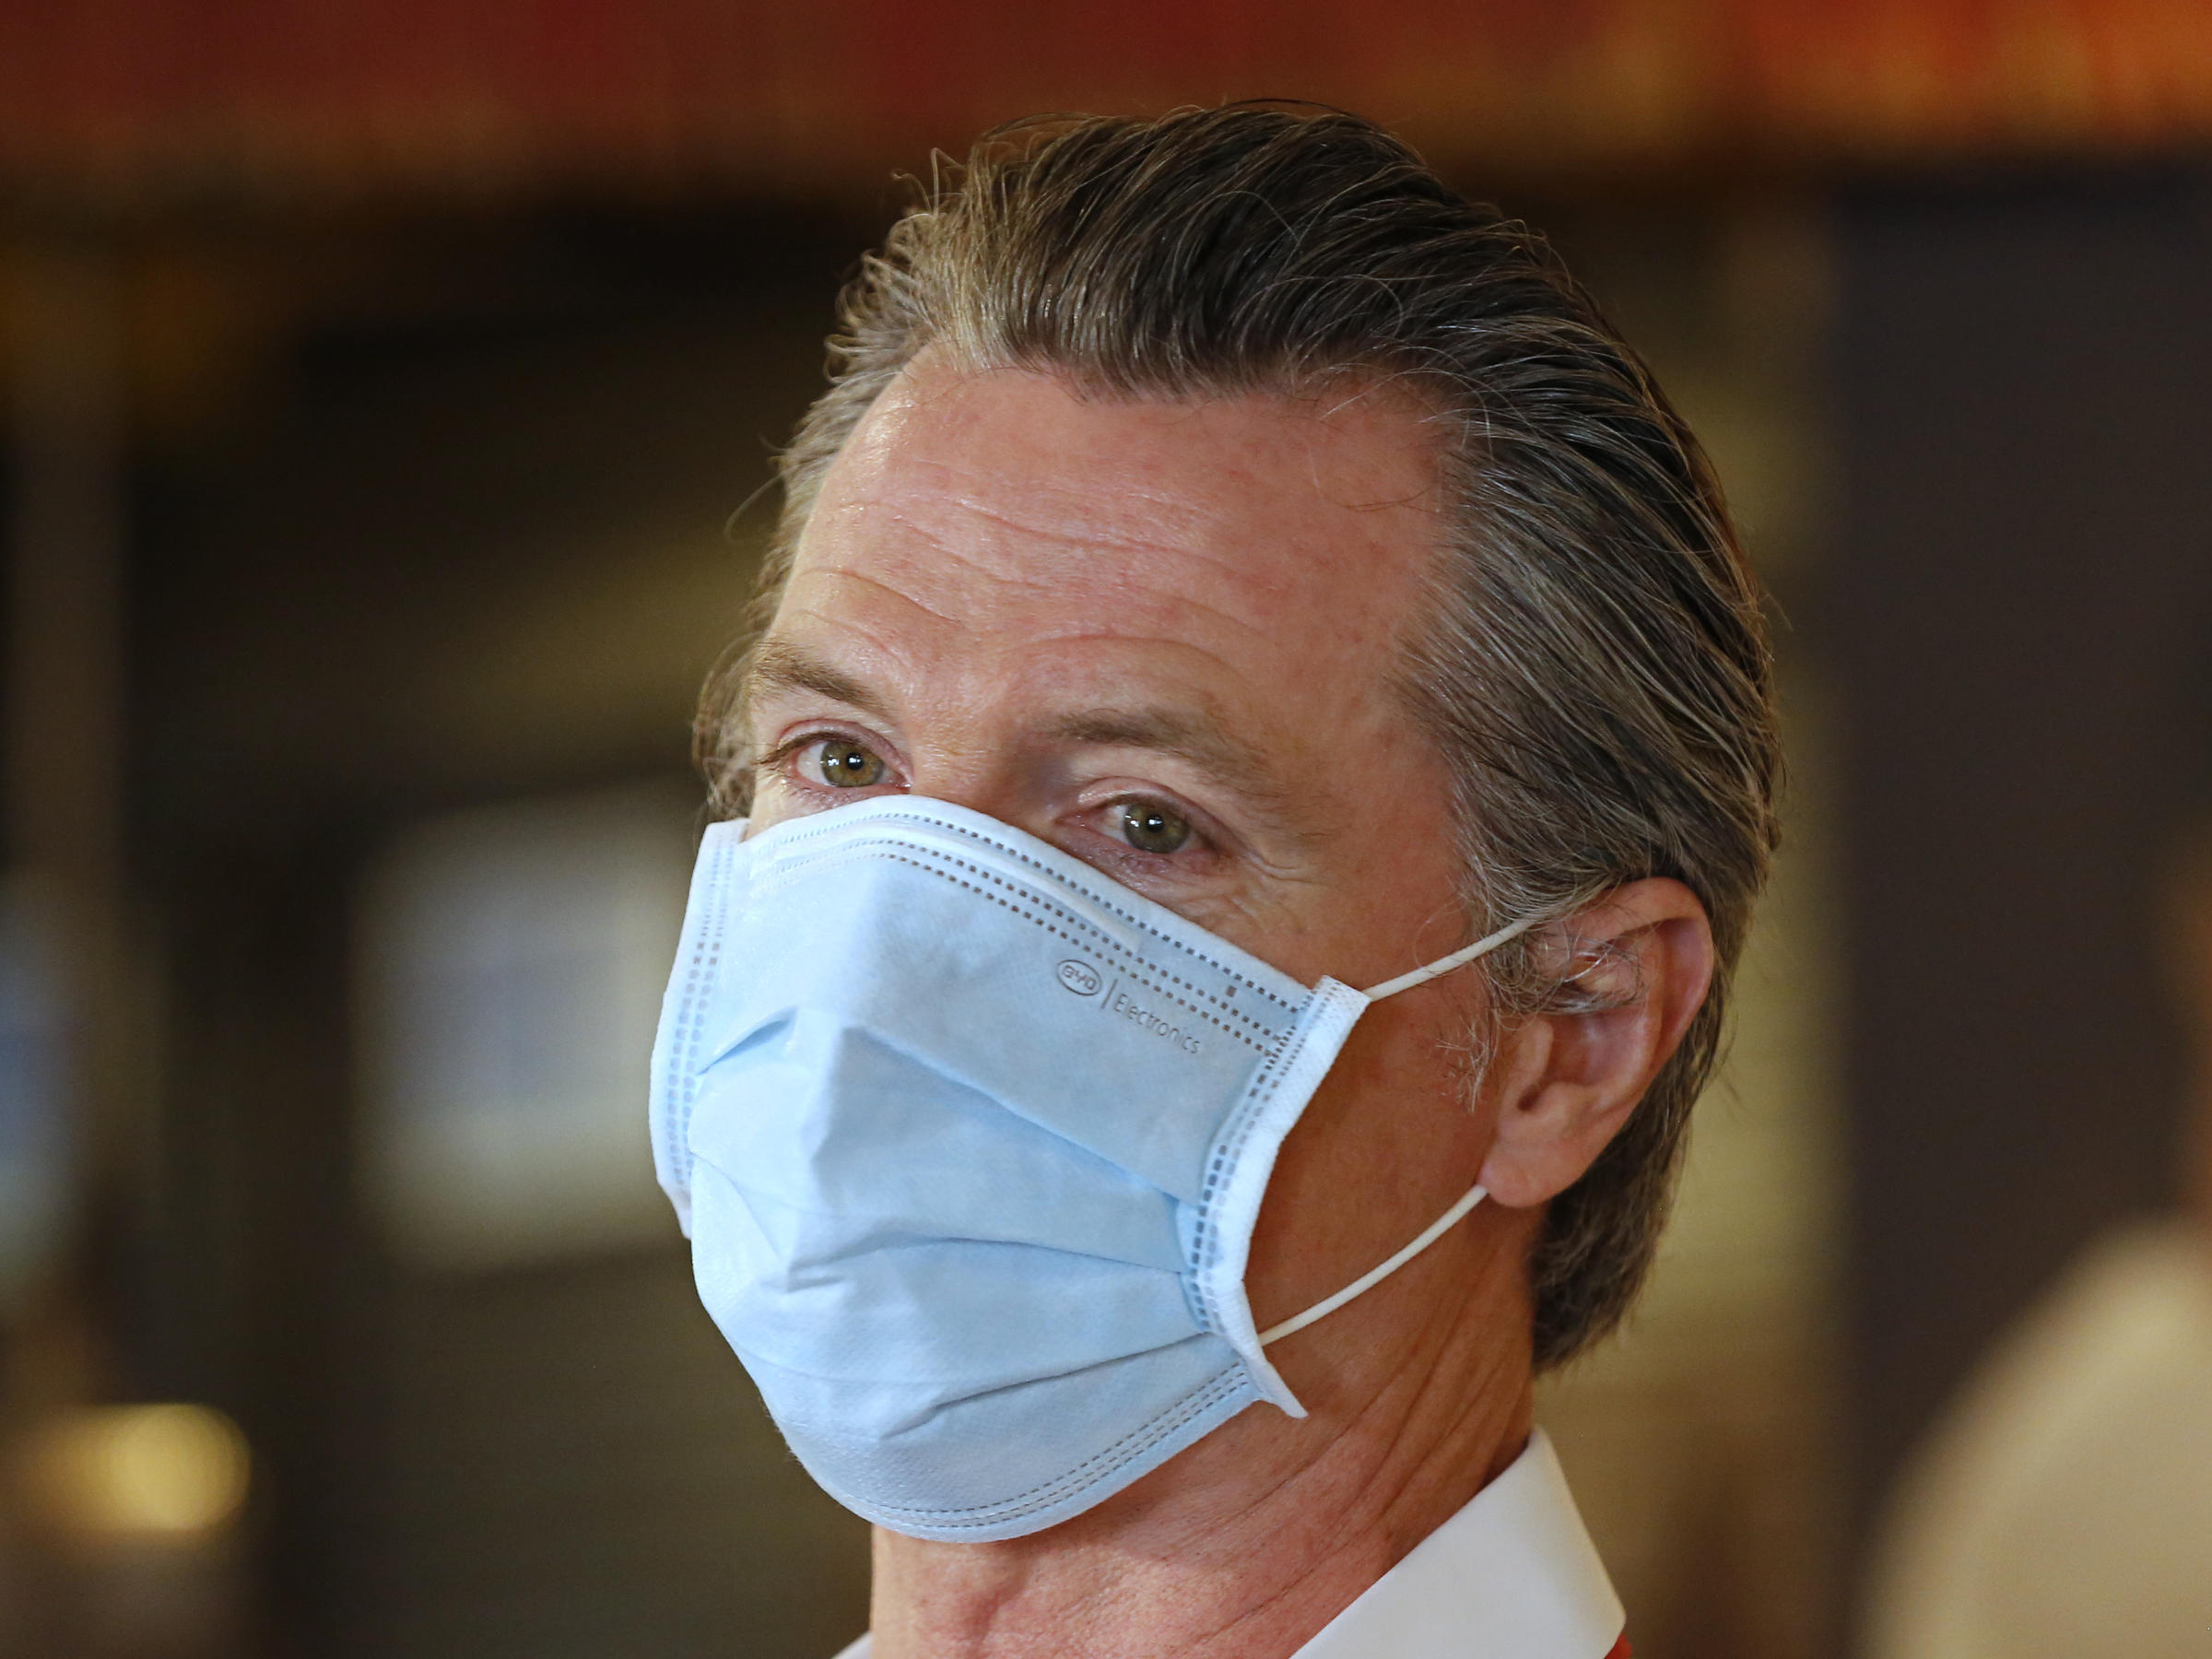 California Gov. Newsom Issues Statewide Order Requiring Masks in Public